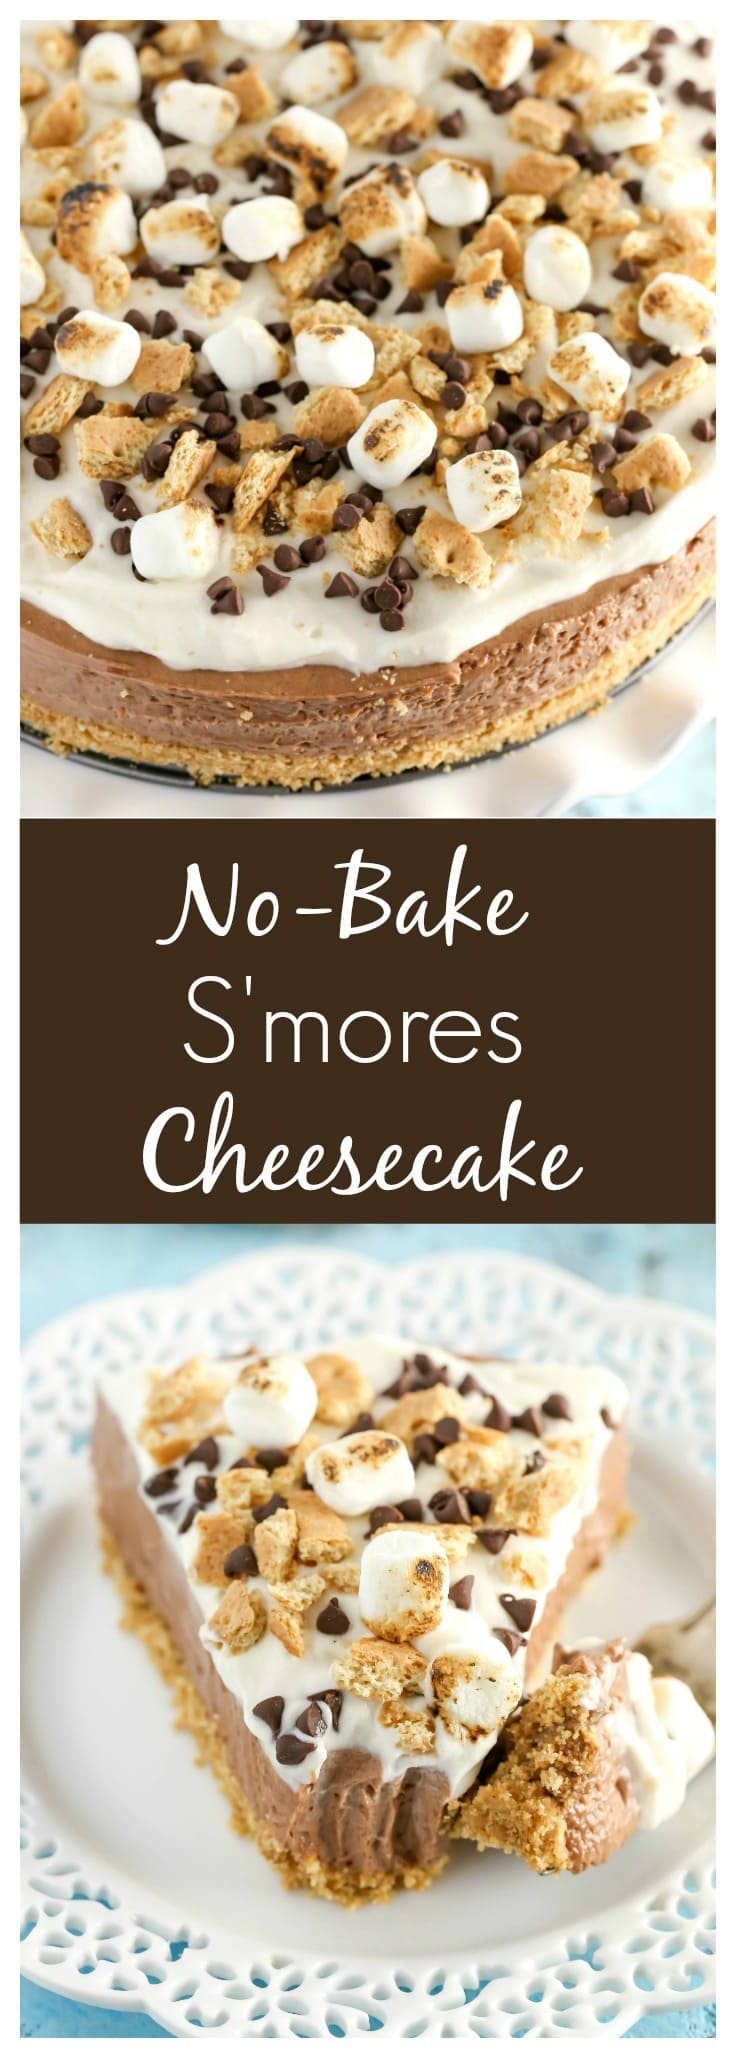 No-Bake S'mores Cheesecake - Live Well Bake Often